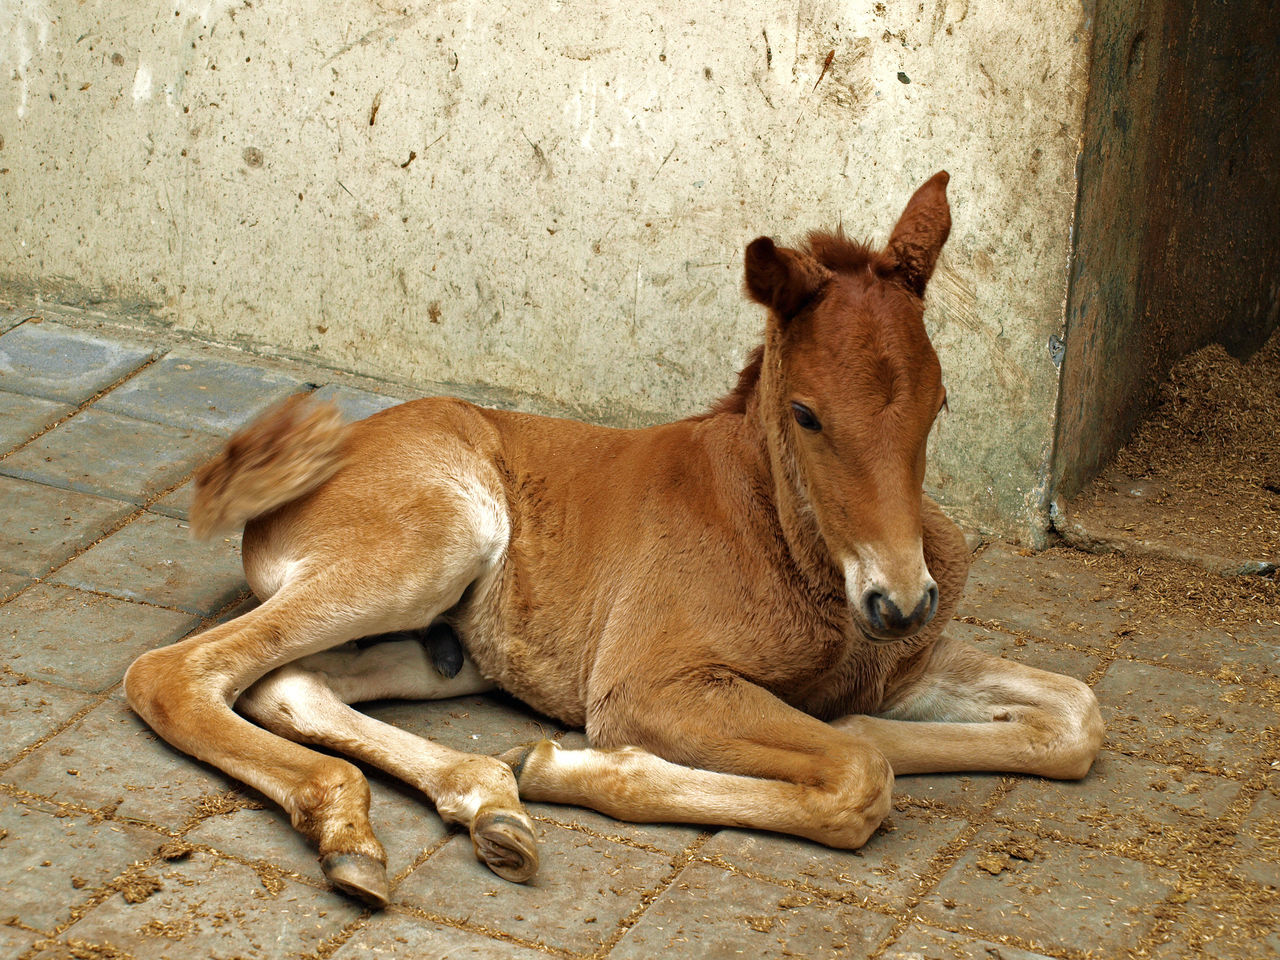 Baby Baby Horse Baby ❤ Chestnut Chestnut Foal Chestnut Horse Close-up Colt Eye4photography  EyeEm Best Shots EyeEm Nature Lover Foal Foal Resting Horse Horse Life Horse Photography  Horses INDONESIA Indonesia_photography Lying Down Resting Young Young Foal